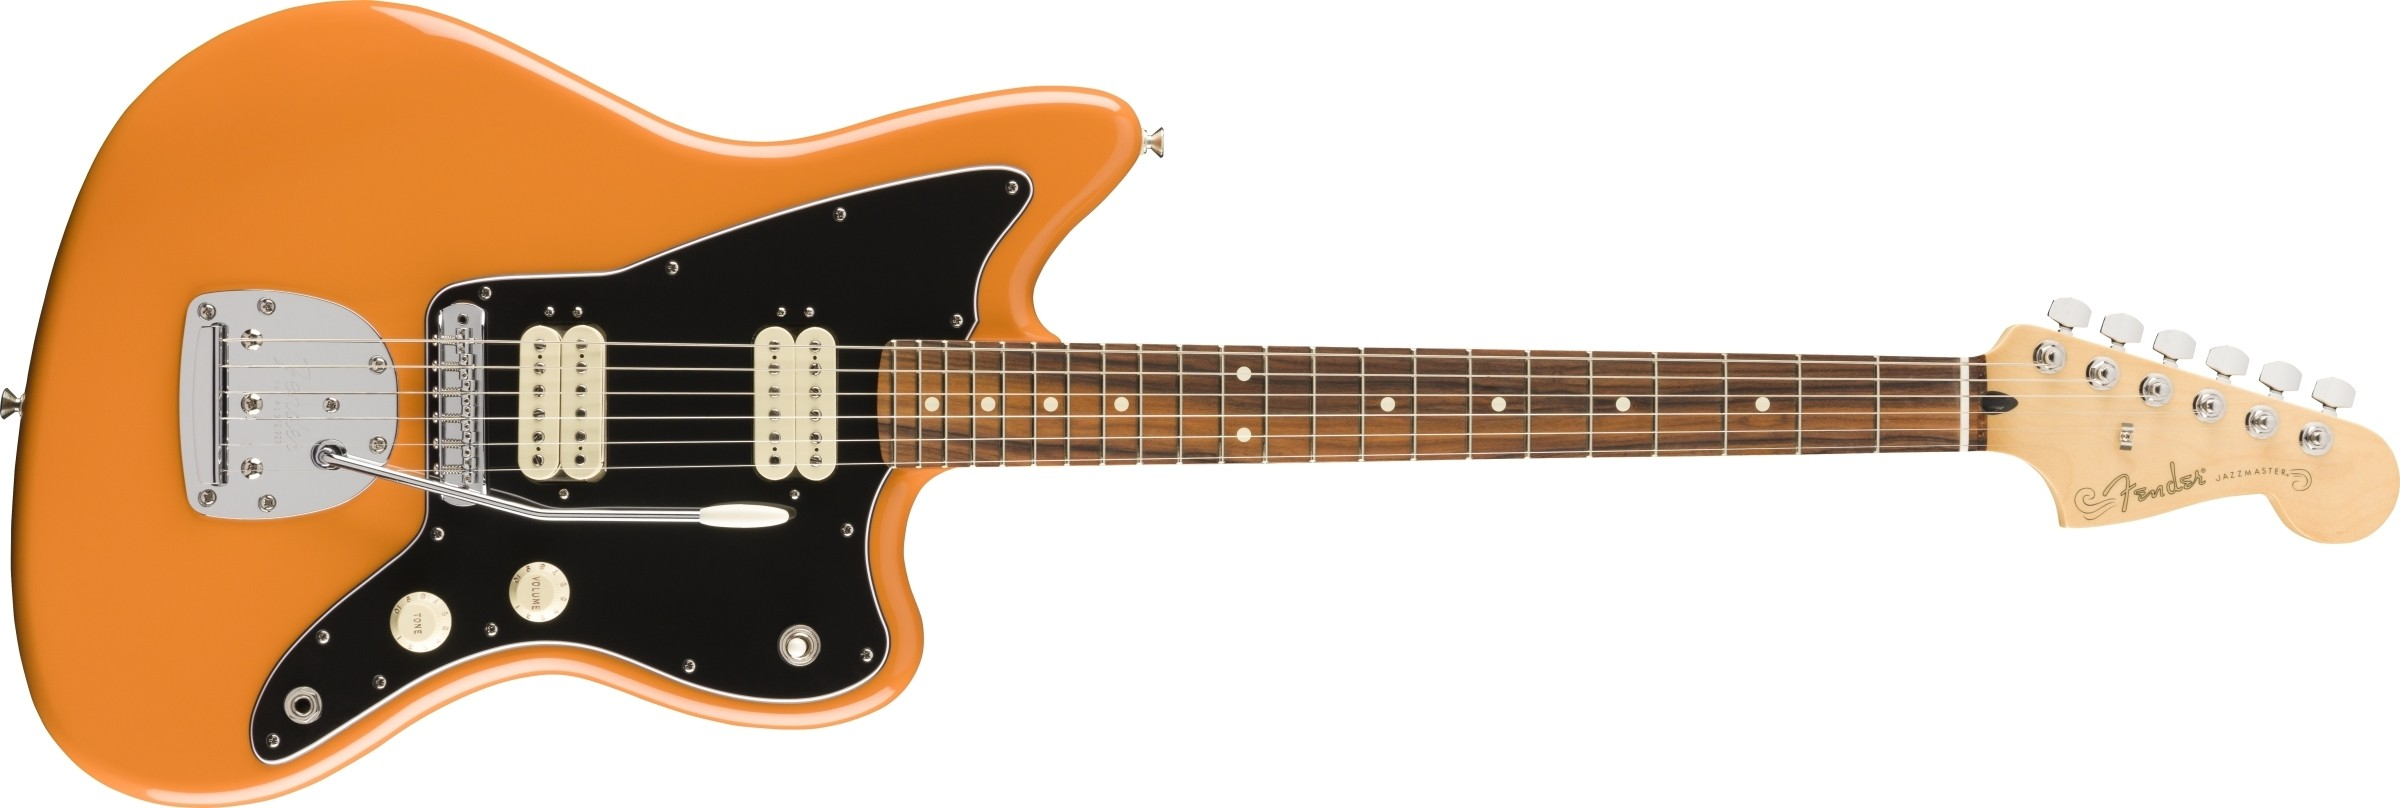 Fender Player Jazzmaster - Capri Orange